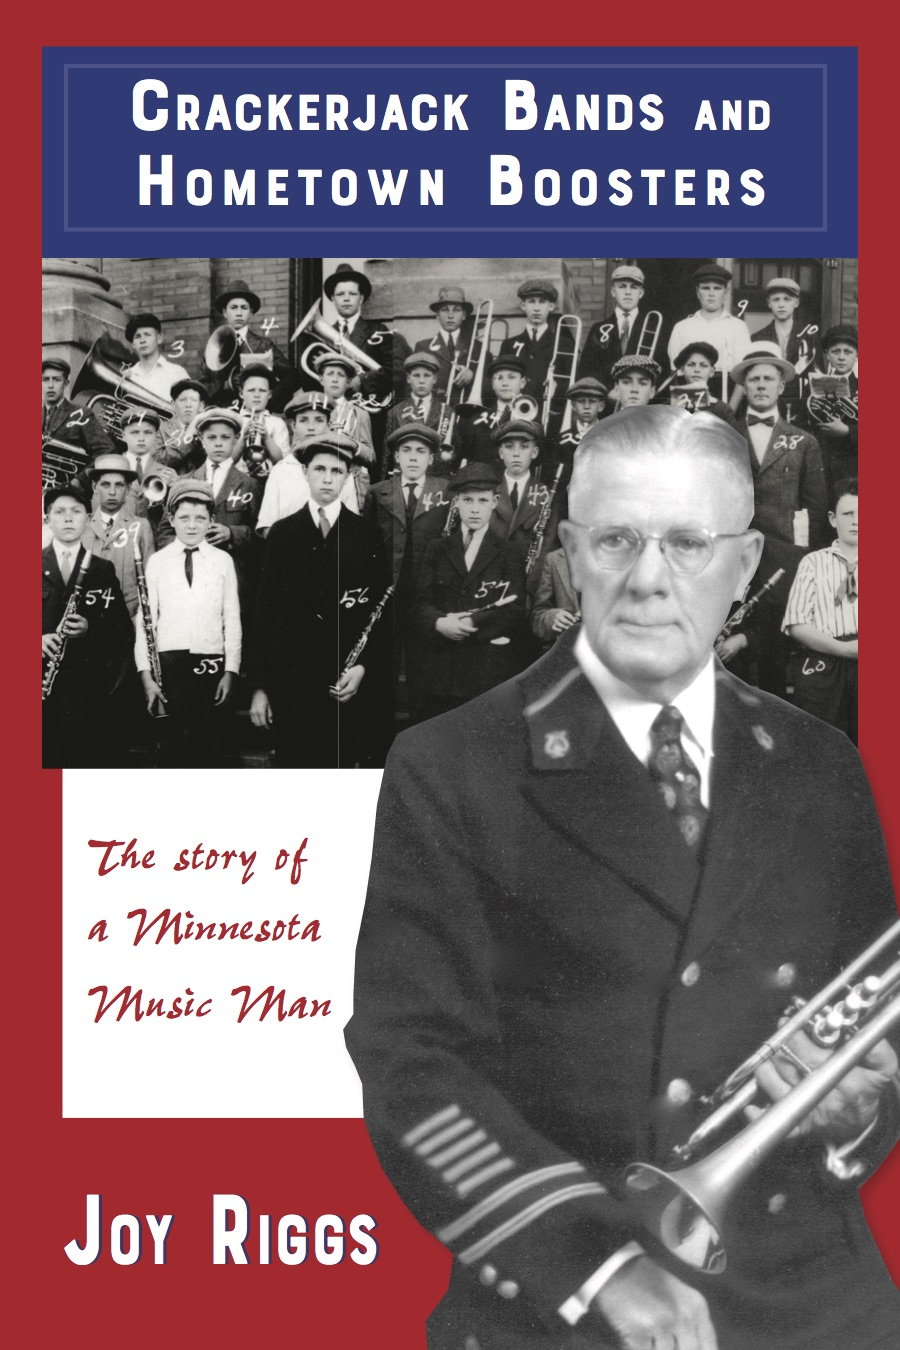 Crackerjack Bands and Hometown Boosters: The Story of a Minnesota Music Man